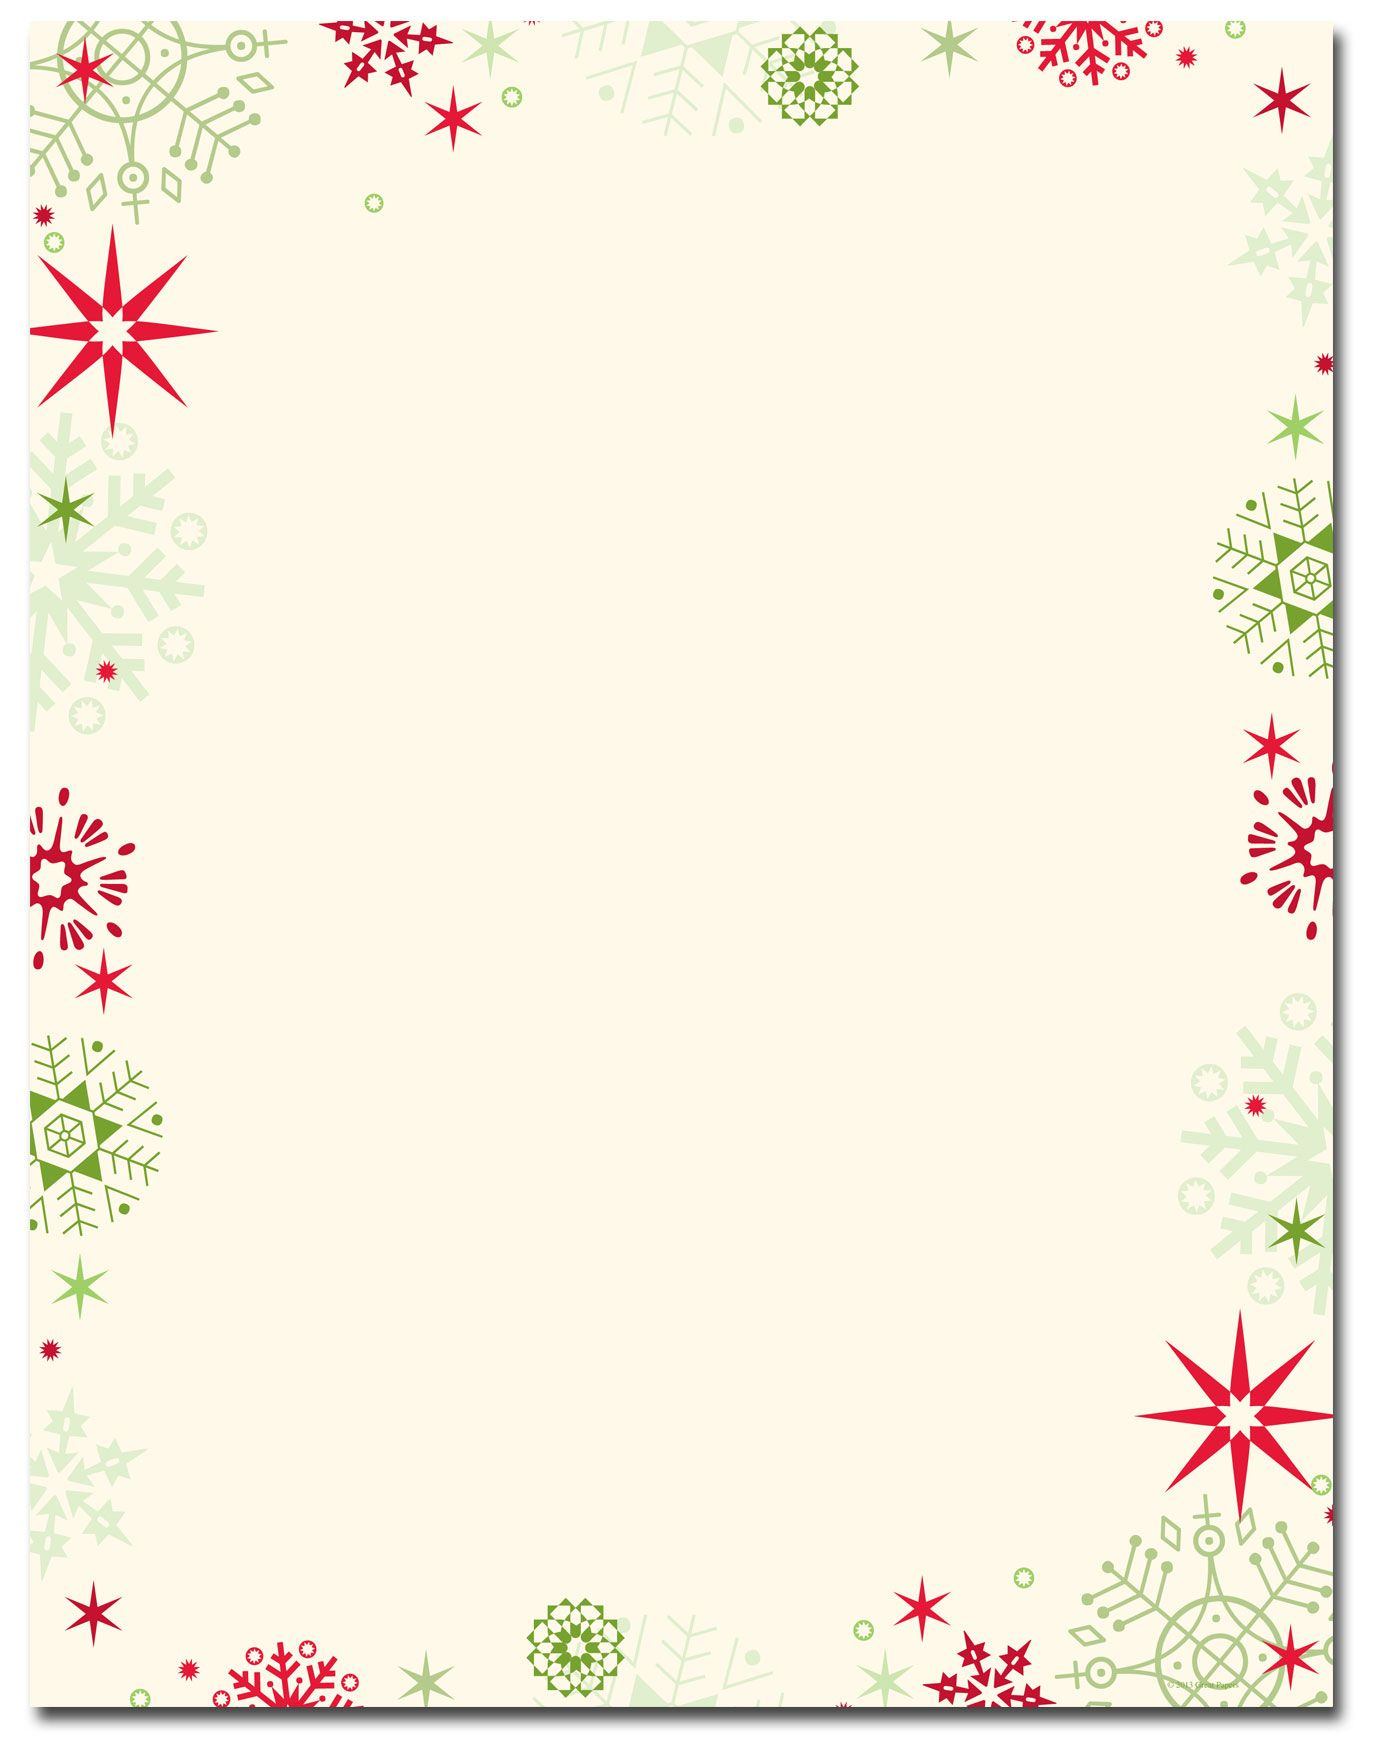 Red & Green Flakes Letterhead | Holiday Papers | Pinterest - Free Printable Letterhead Borders